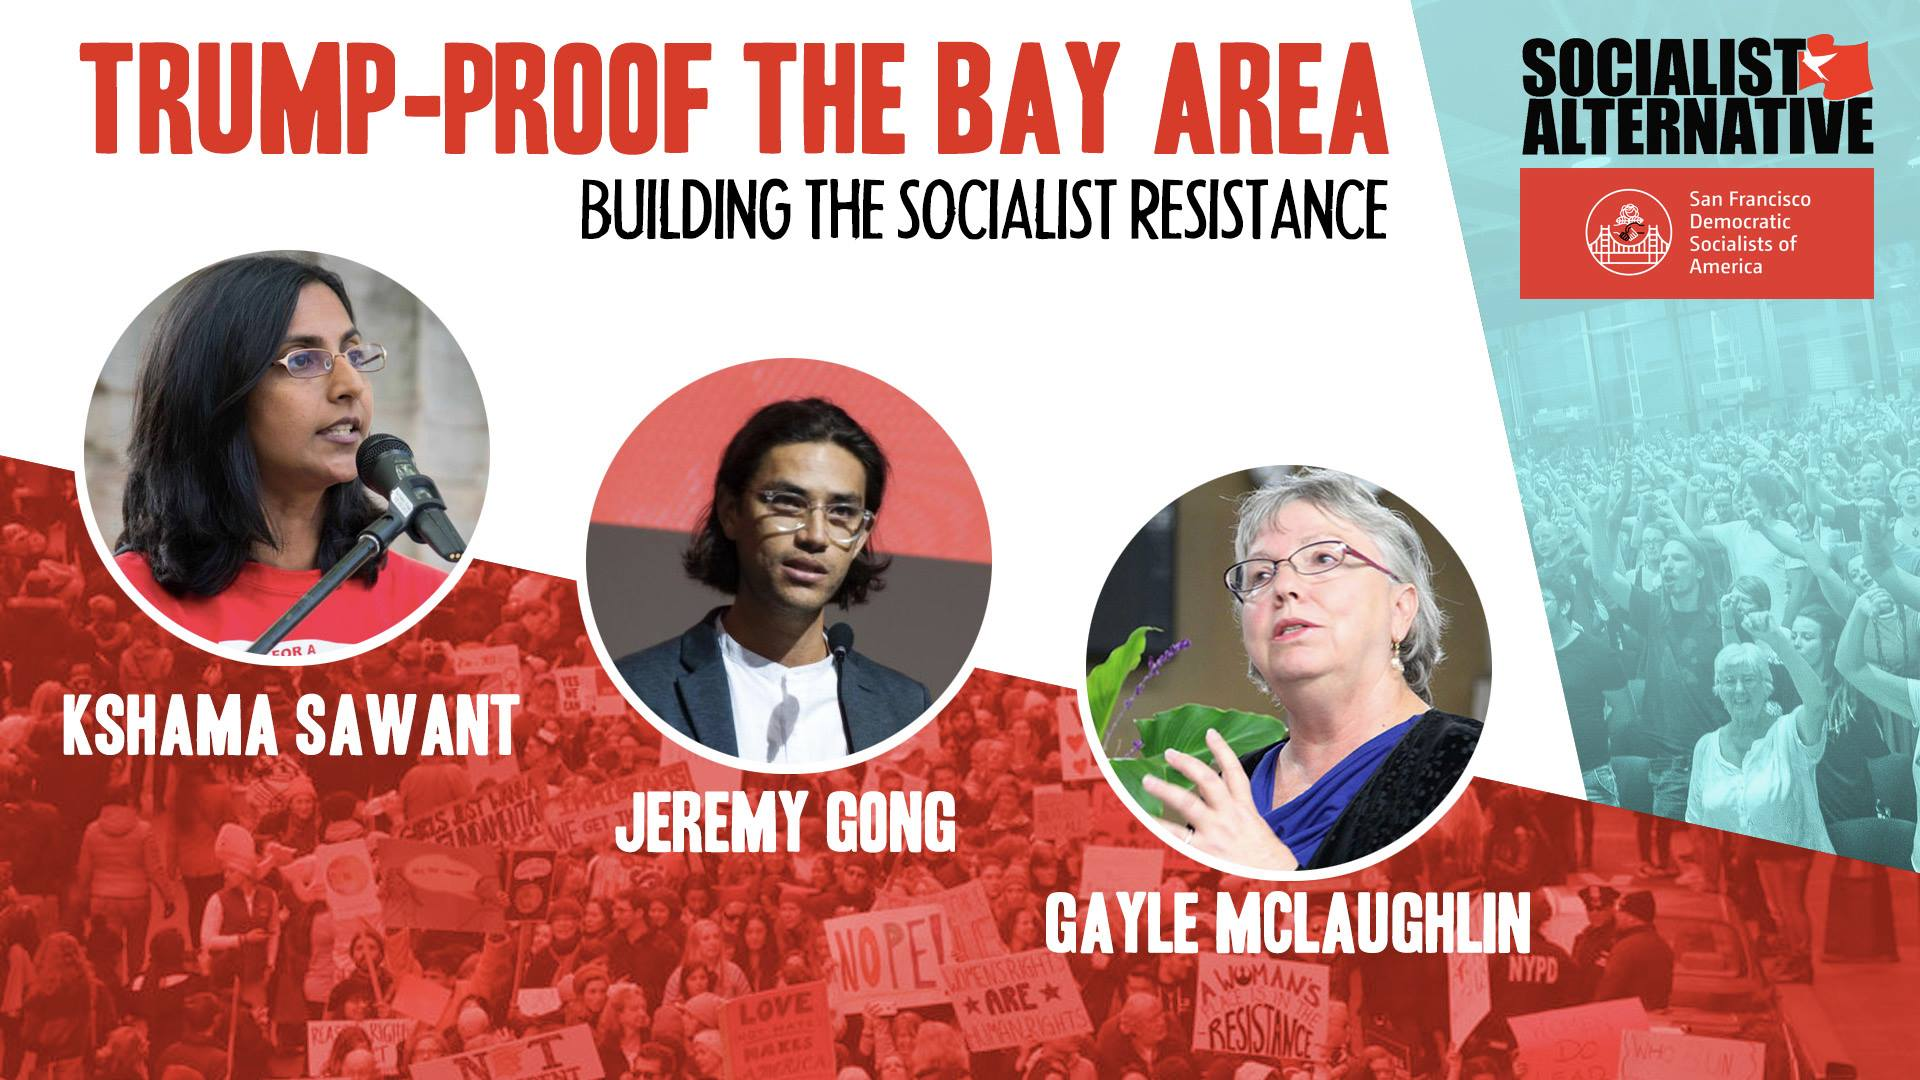 Trump-Proof the Bay Area! Building the Socialist Resistance